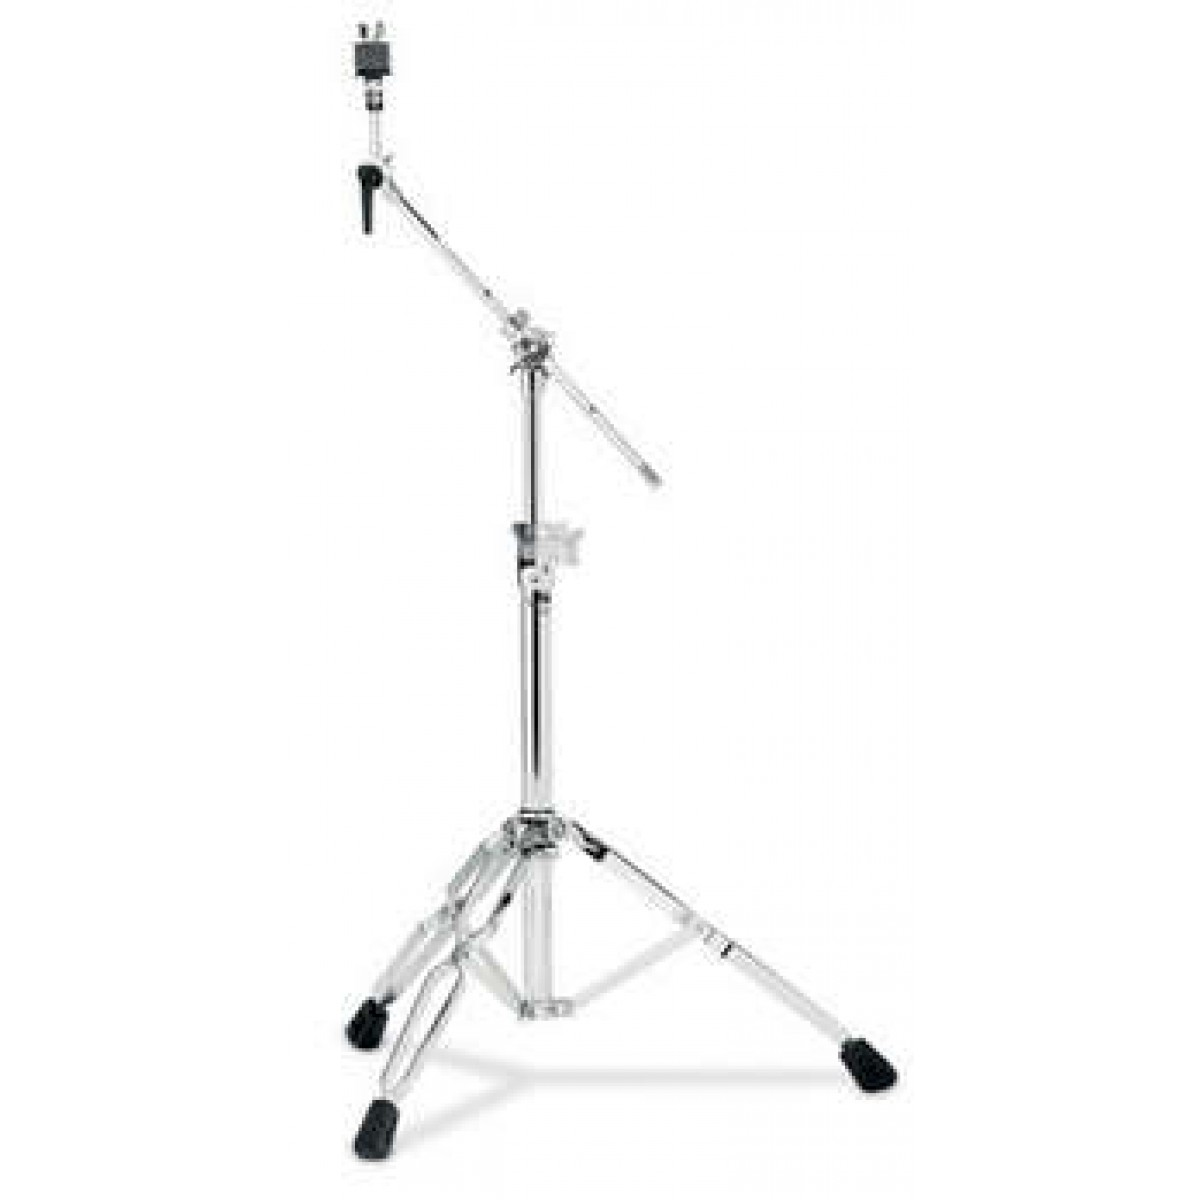 dw 9000 series low boom ride cymbal stand dwcp9701. Black Bedroom Furniture Sets. Home Design Ideas